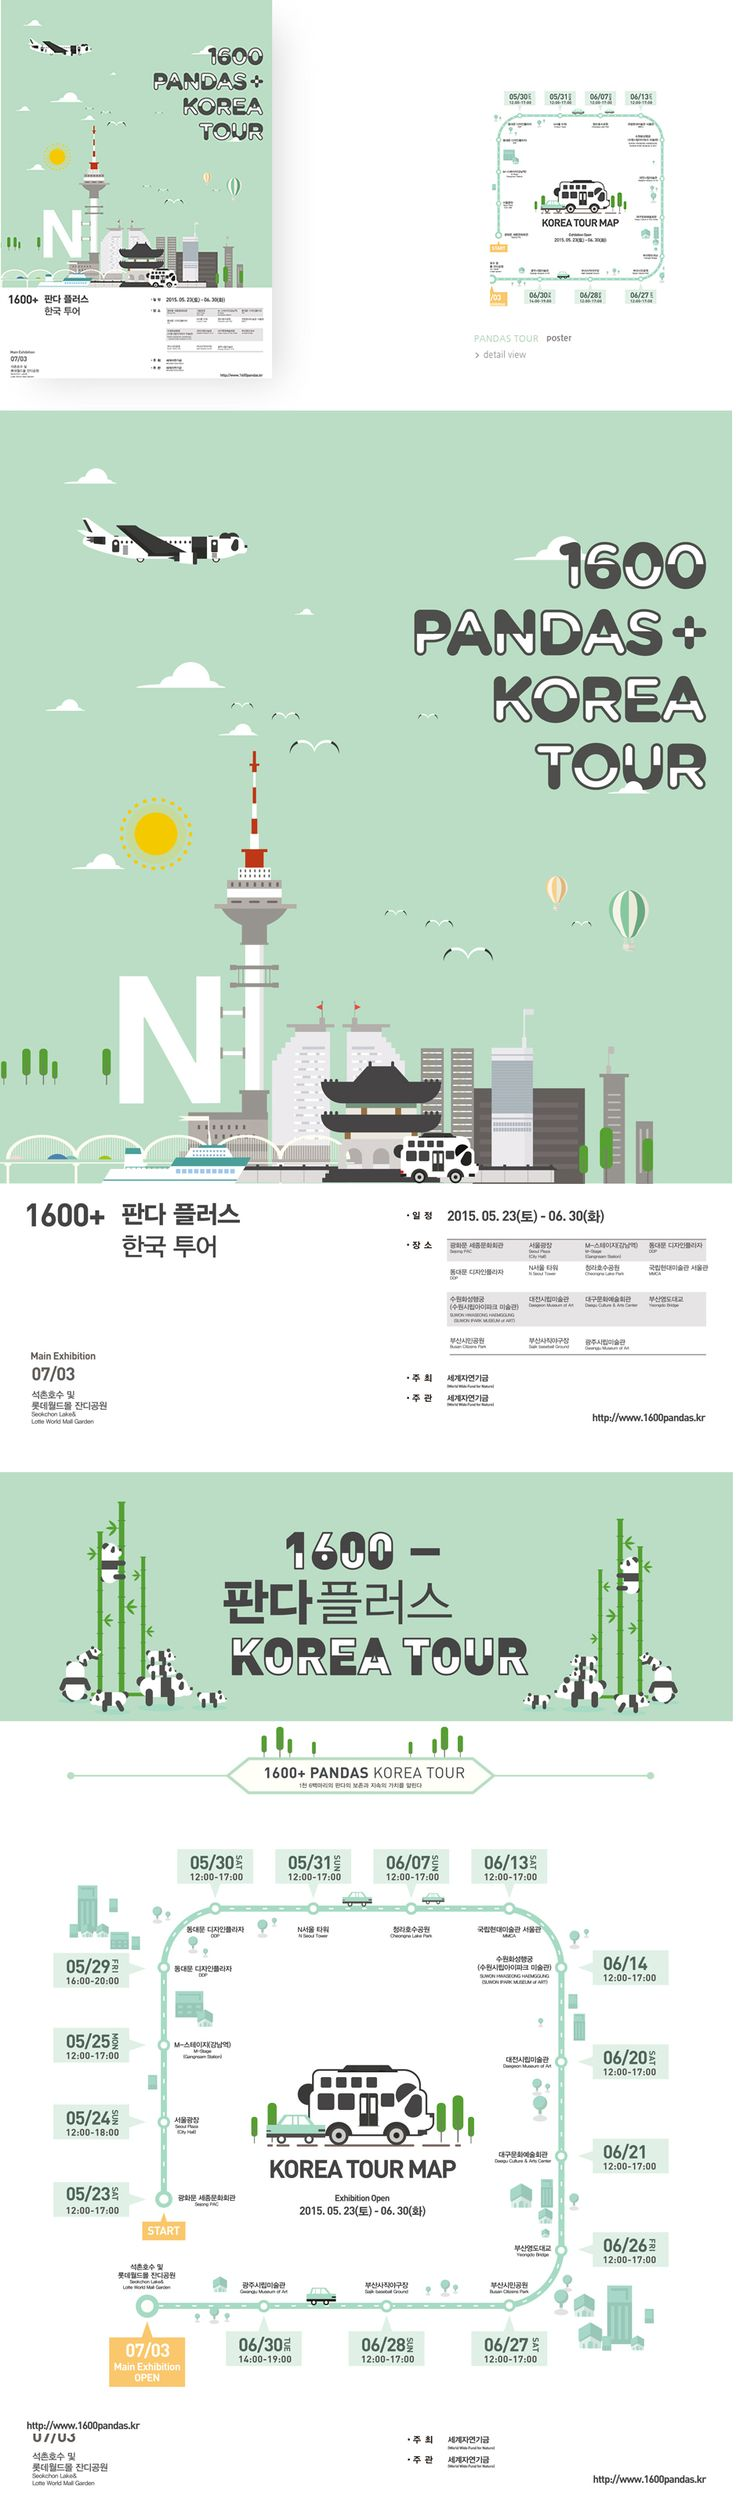 디자인 나스 (designnas) 학생 광고 편집 디자인 - 포스터 포트폴리오 (advertisement pamphlet)입니다. 키워드 : brand, ad, advertisement, leaflet, pamphlet, catalog, brochure, poster, branding, info graphic, design, paper, graphics, portfolio 디자인나스의 작품은 모두 학생작품입니다. all rights reserved designnas www.designnas.com